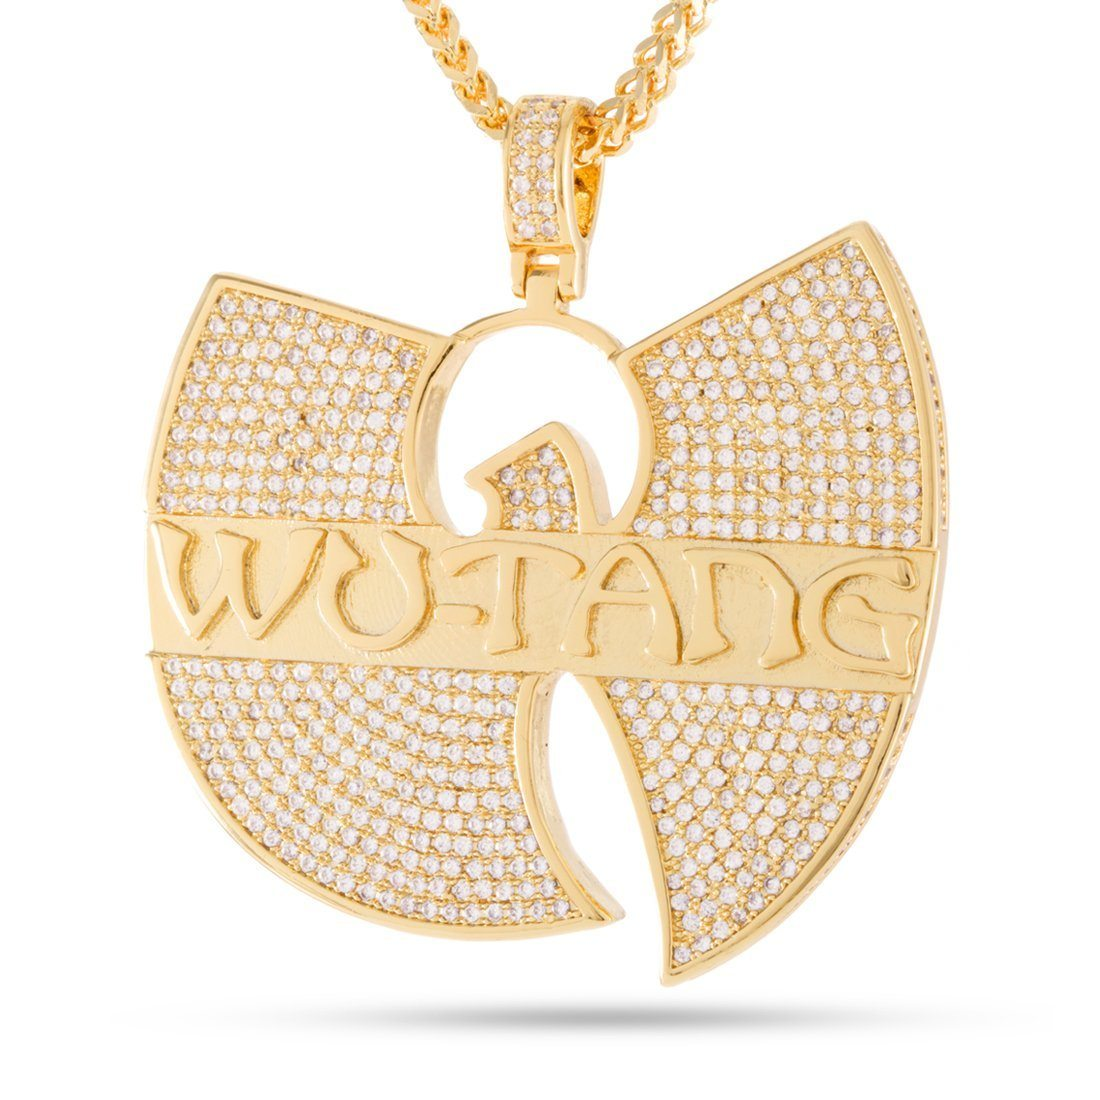 Wu-Tang Clan x King Ice – The Forever Necklace